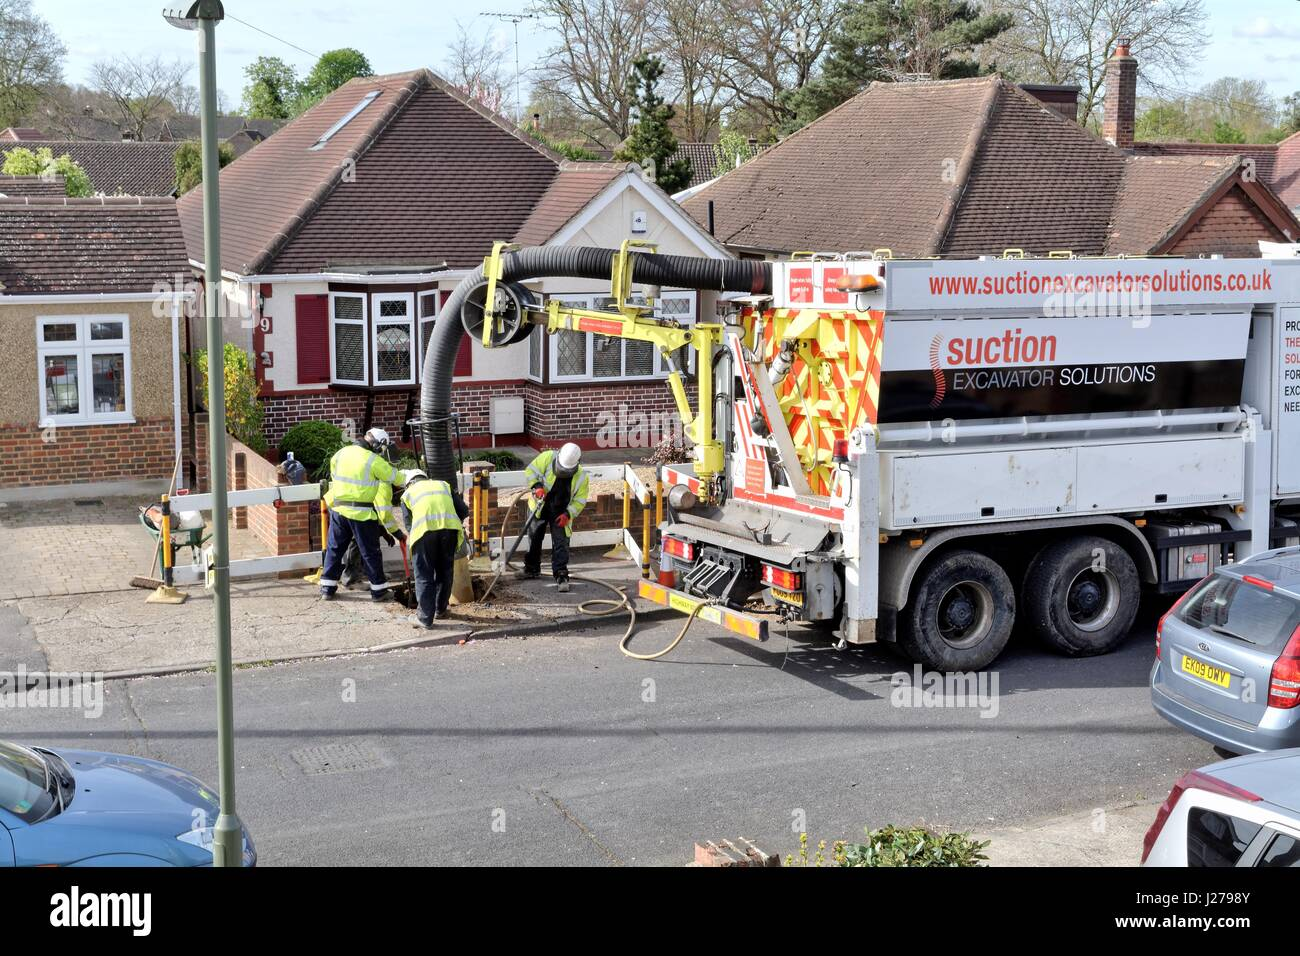 Large suction lorry excavating  a hole in a suburban pavement in Shepperton Surrey UK - Stock Image